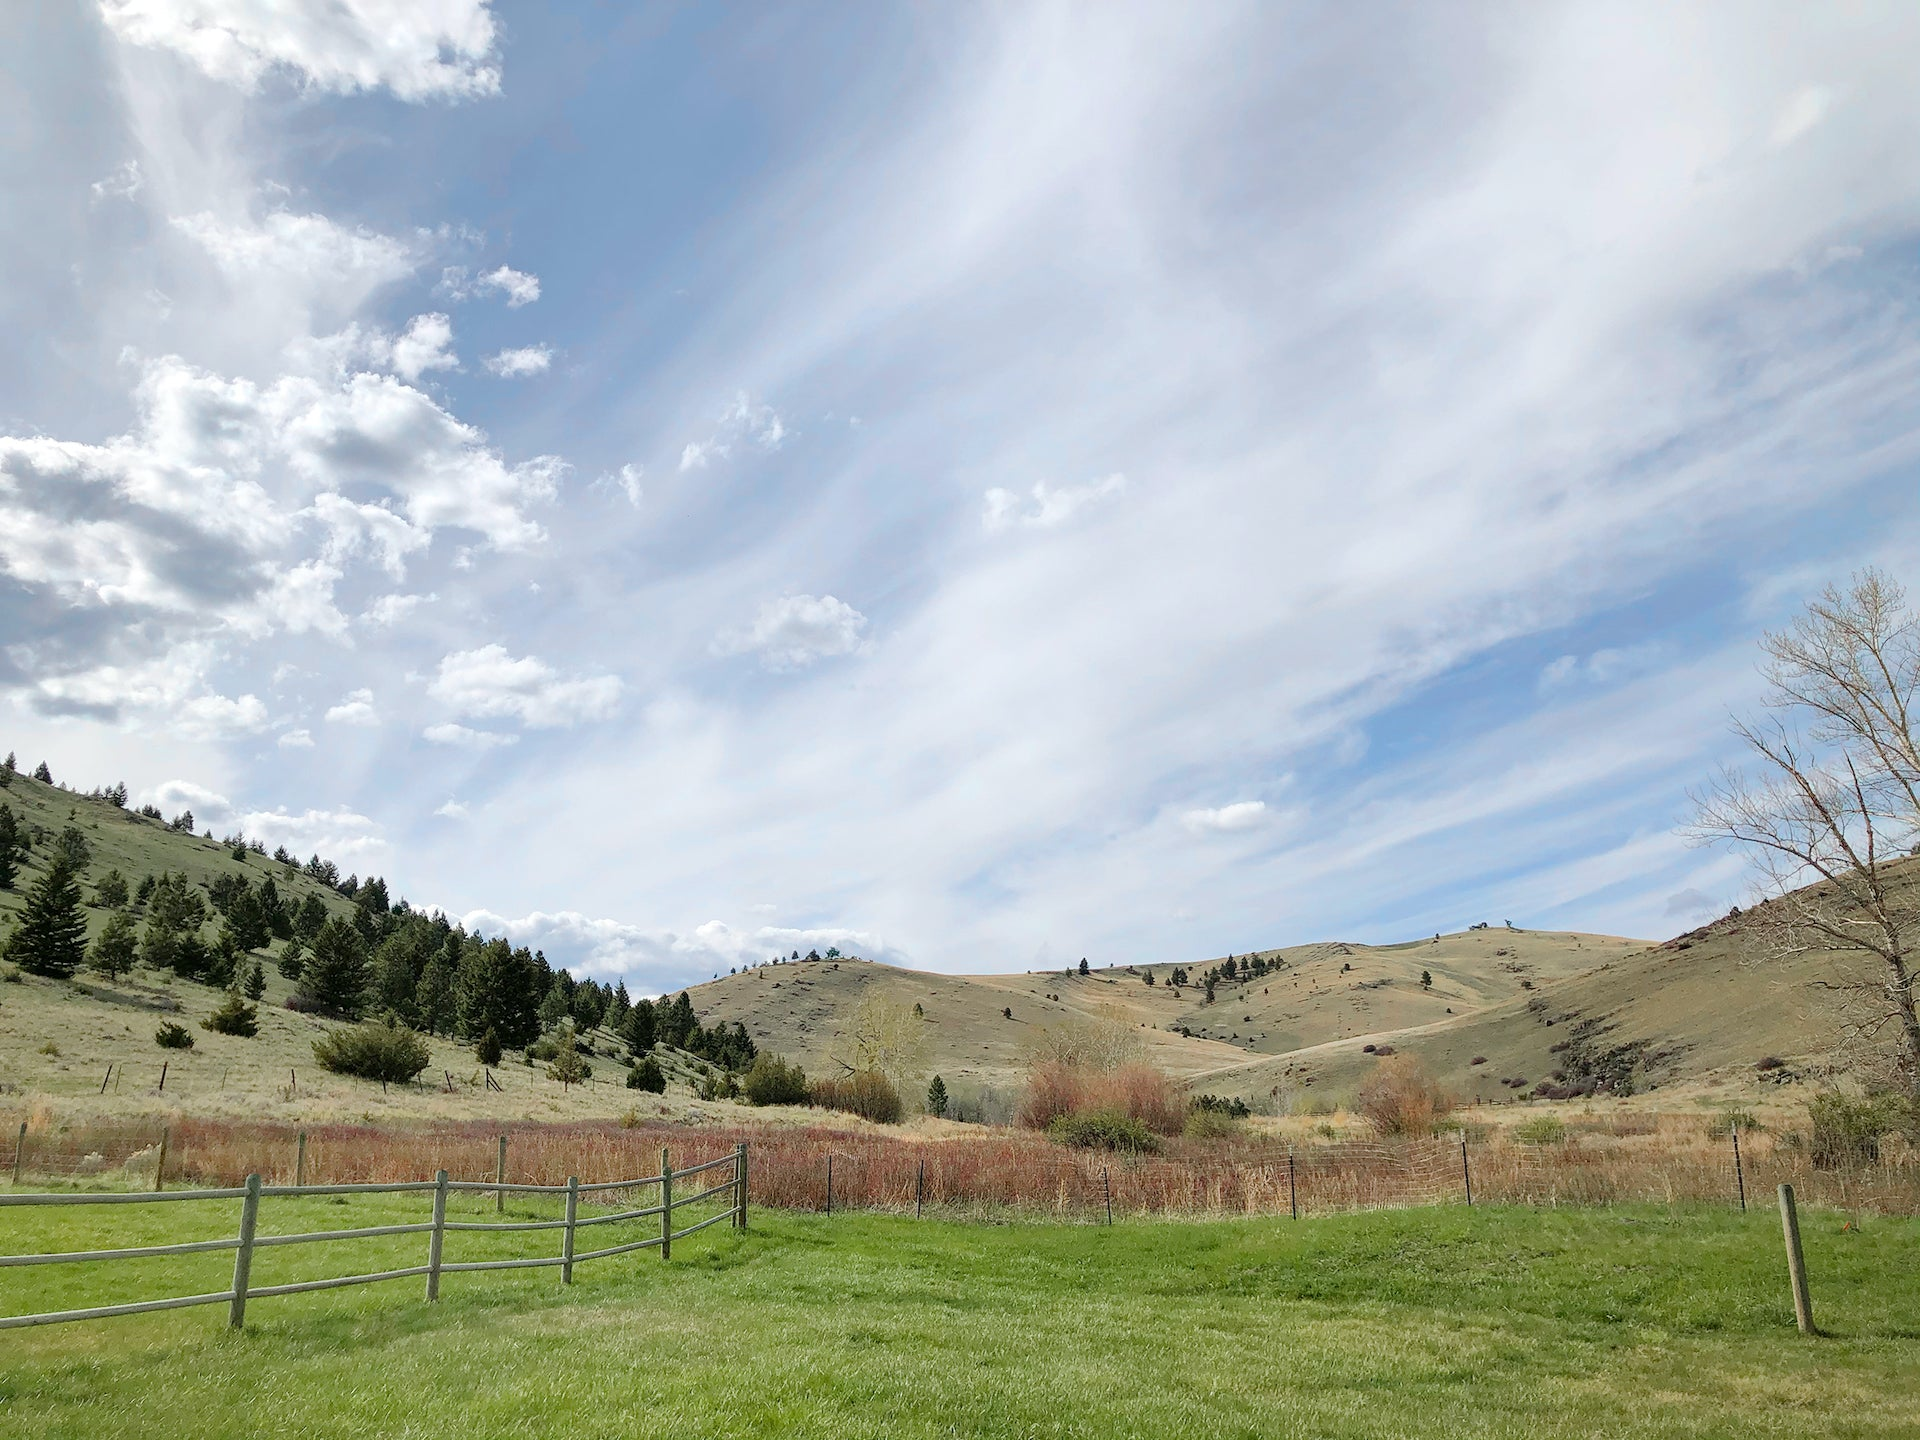 The view from Jung's new home and studio in Montana, a property set along the Blue Cloud Creek. Photo © Mimi Jung